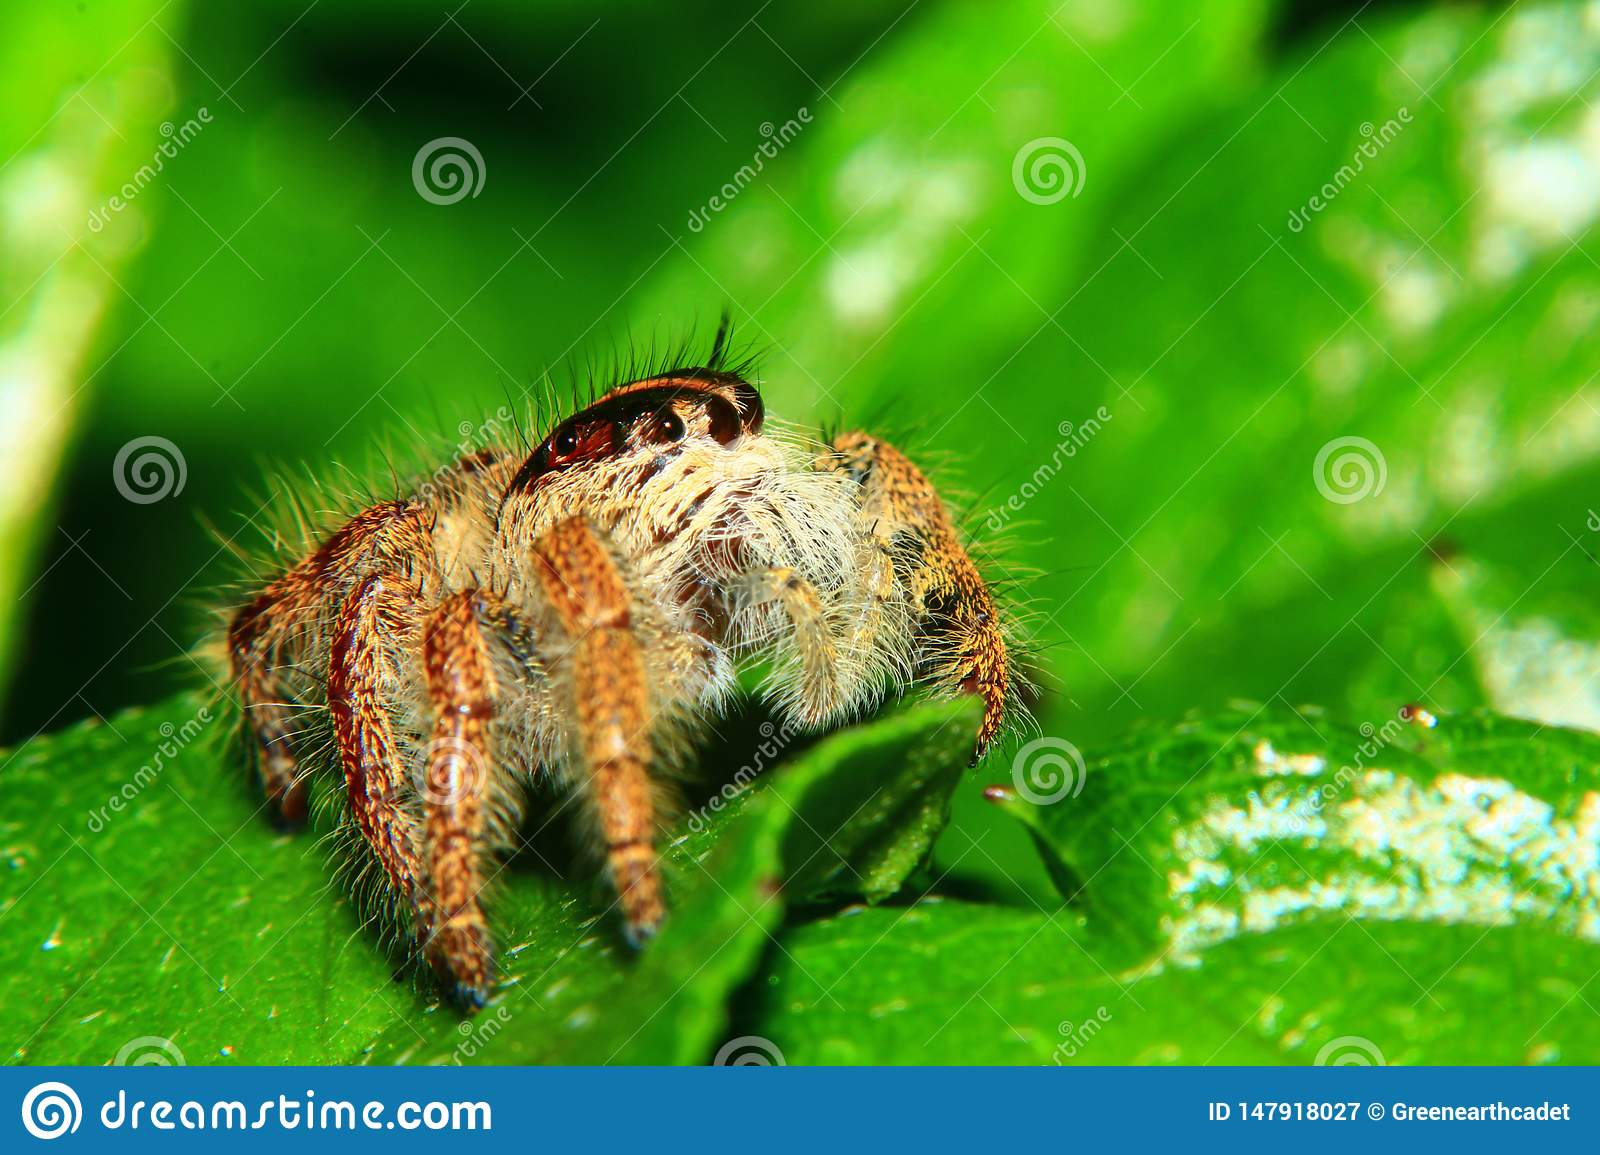 A macro image of Jumping spider Salticidae, Hyllus diardi female with good sharpen and detailed, hair, eye, and face very clear